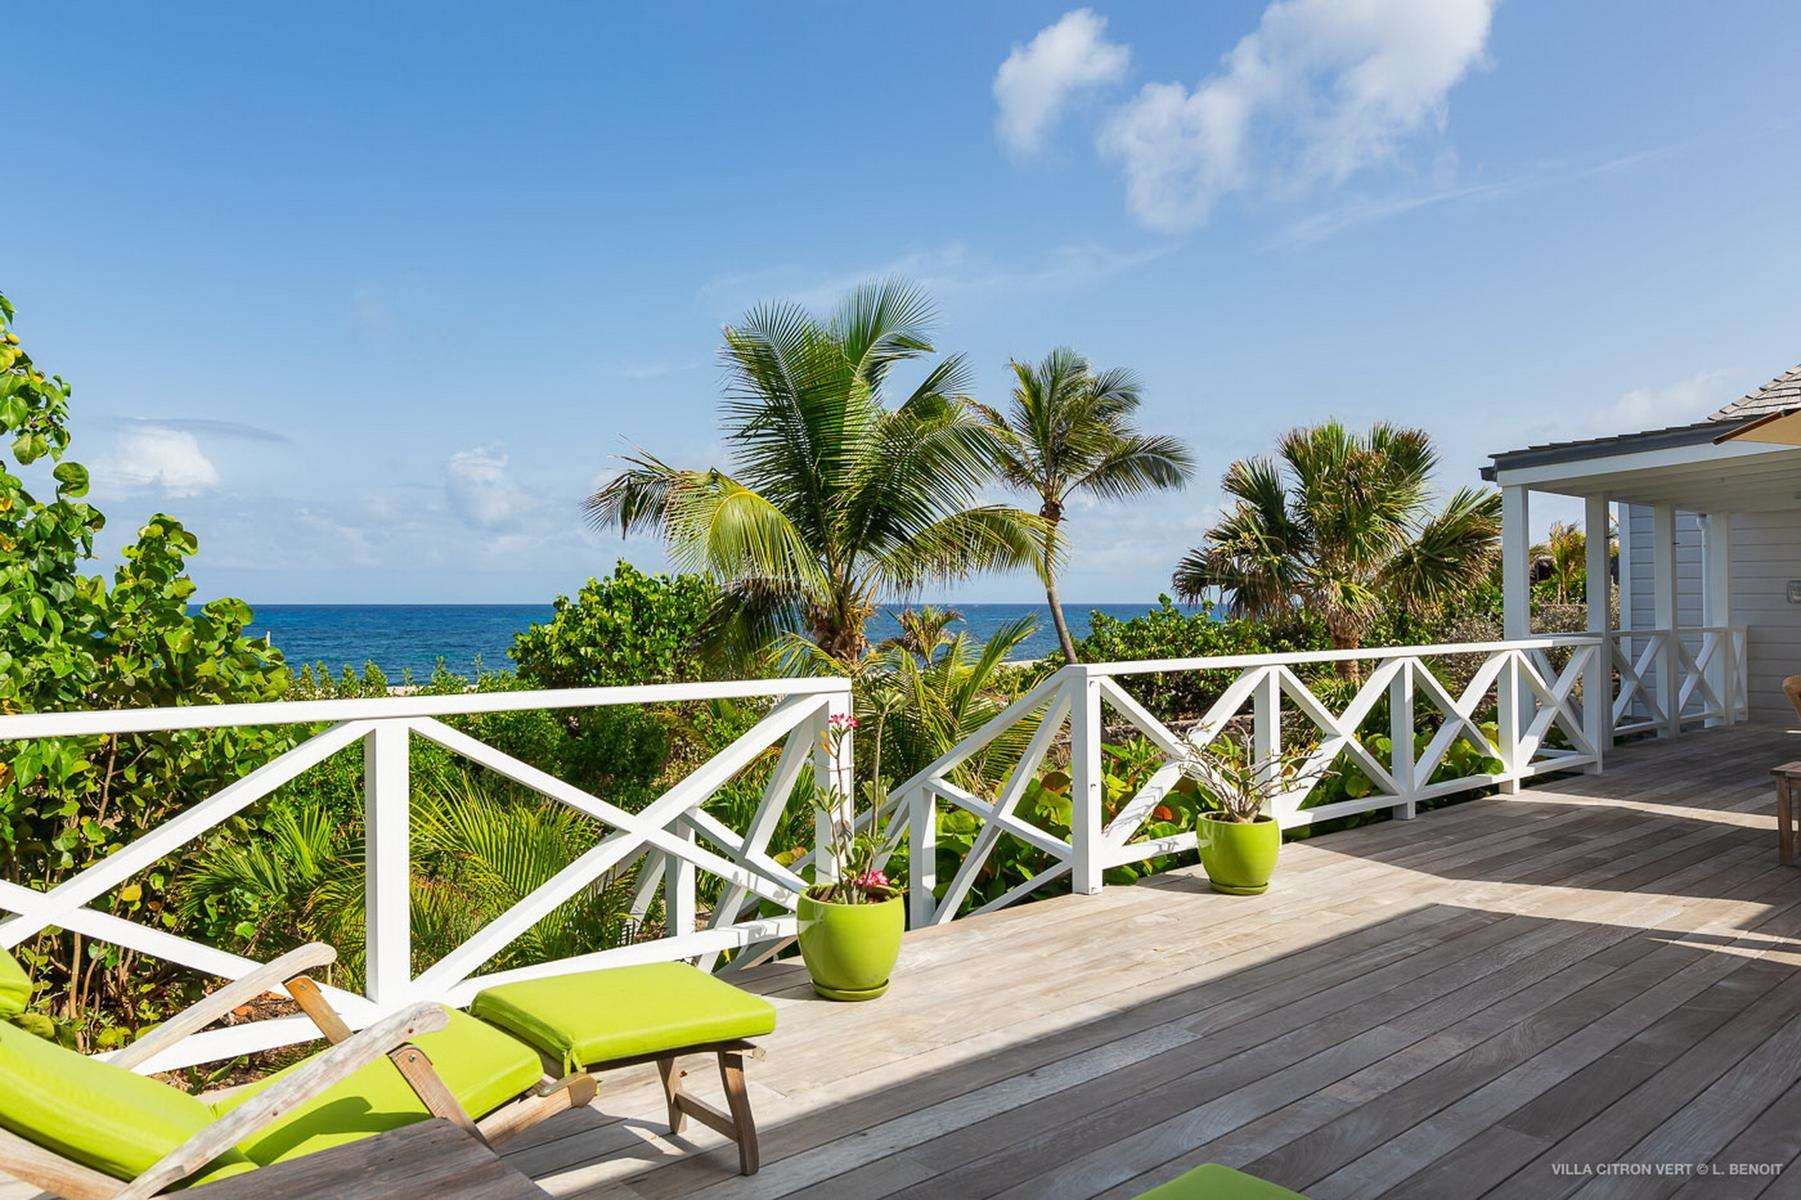 Luxury villa rentals caribbean - St barthelemy - Toiny - No location 4 - Citron Vert - Image 1/21